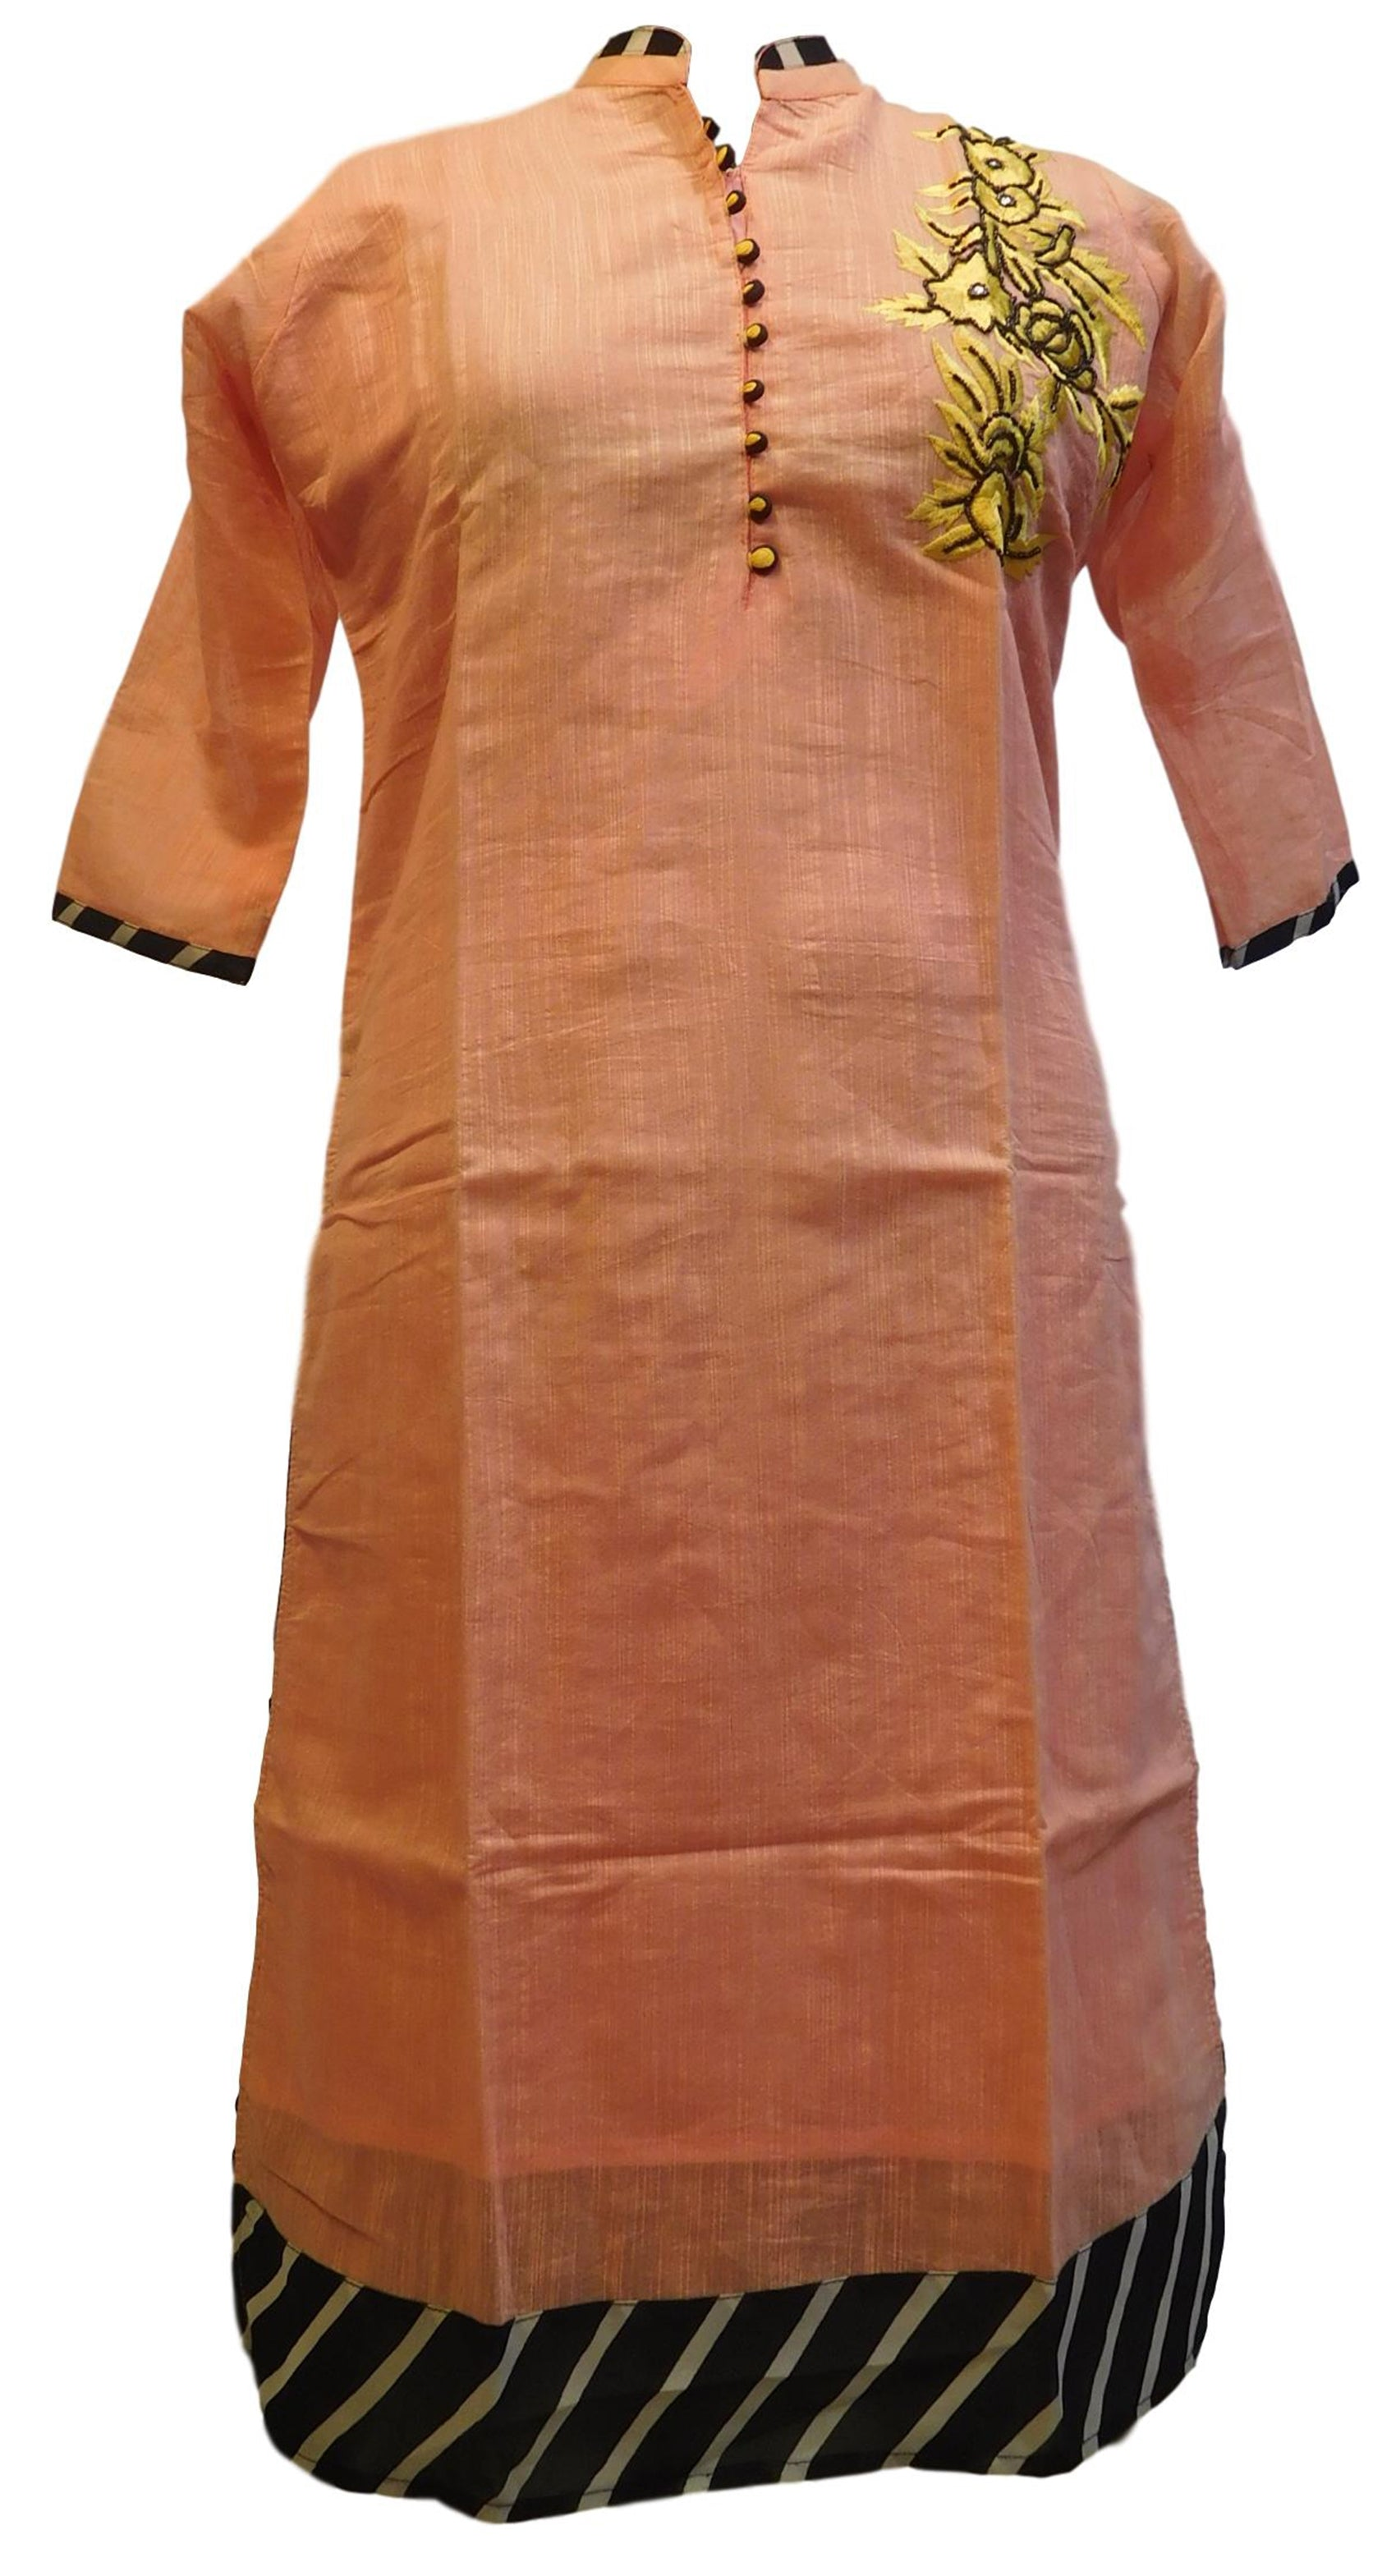 Peach Designer Cotton (Chanderi) Hand Embroidery Thread Beads Work Kurti Kurta D276